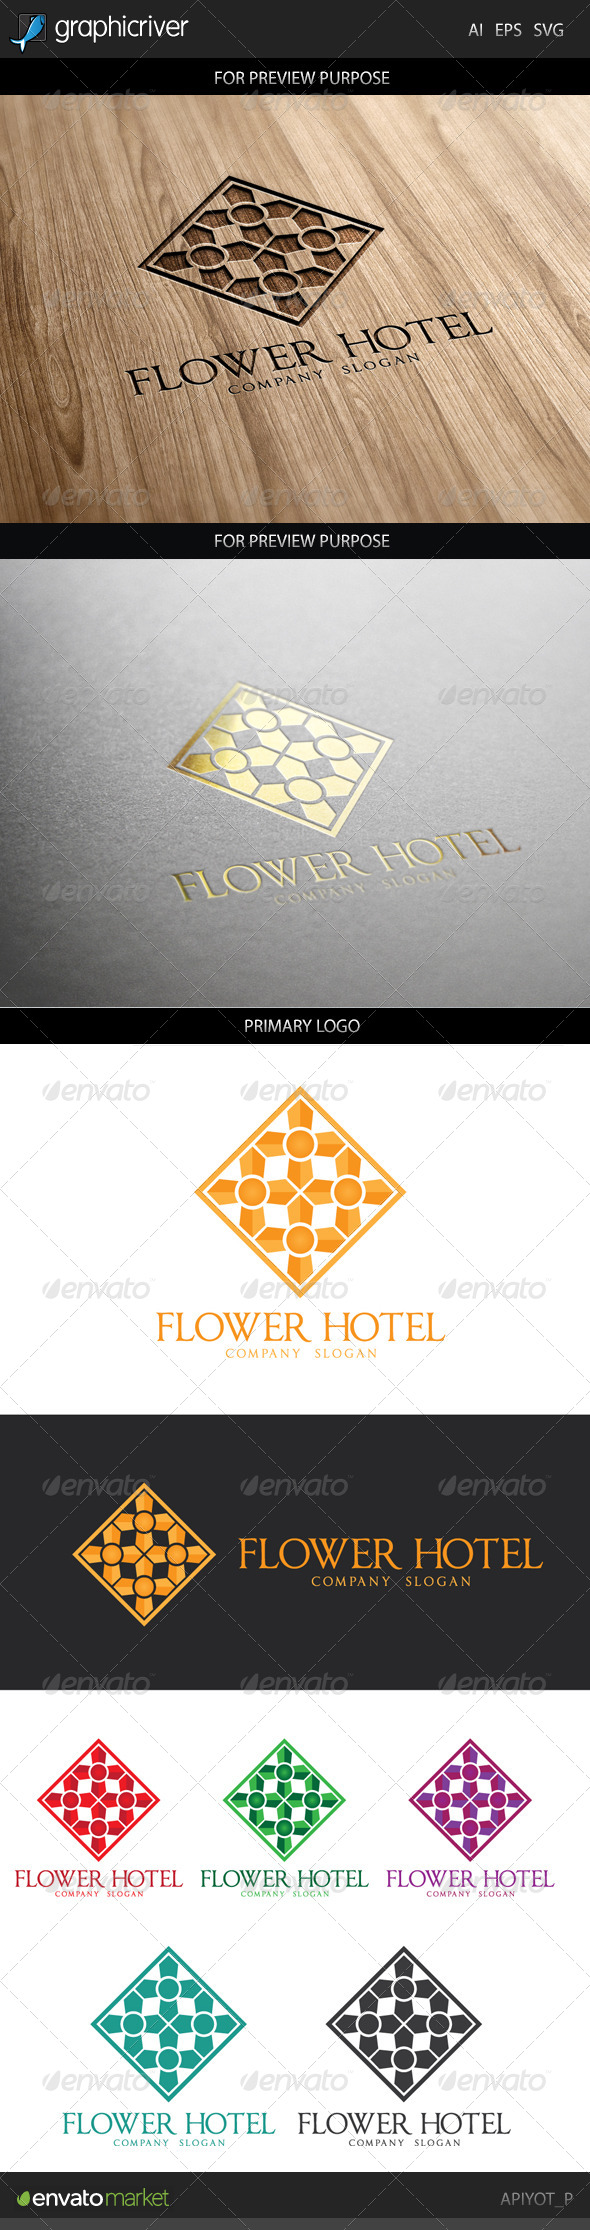 GraphicRiver Flower Hotel Logo 8748166